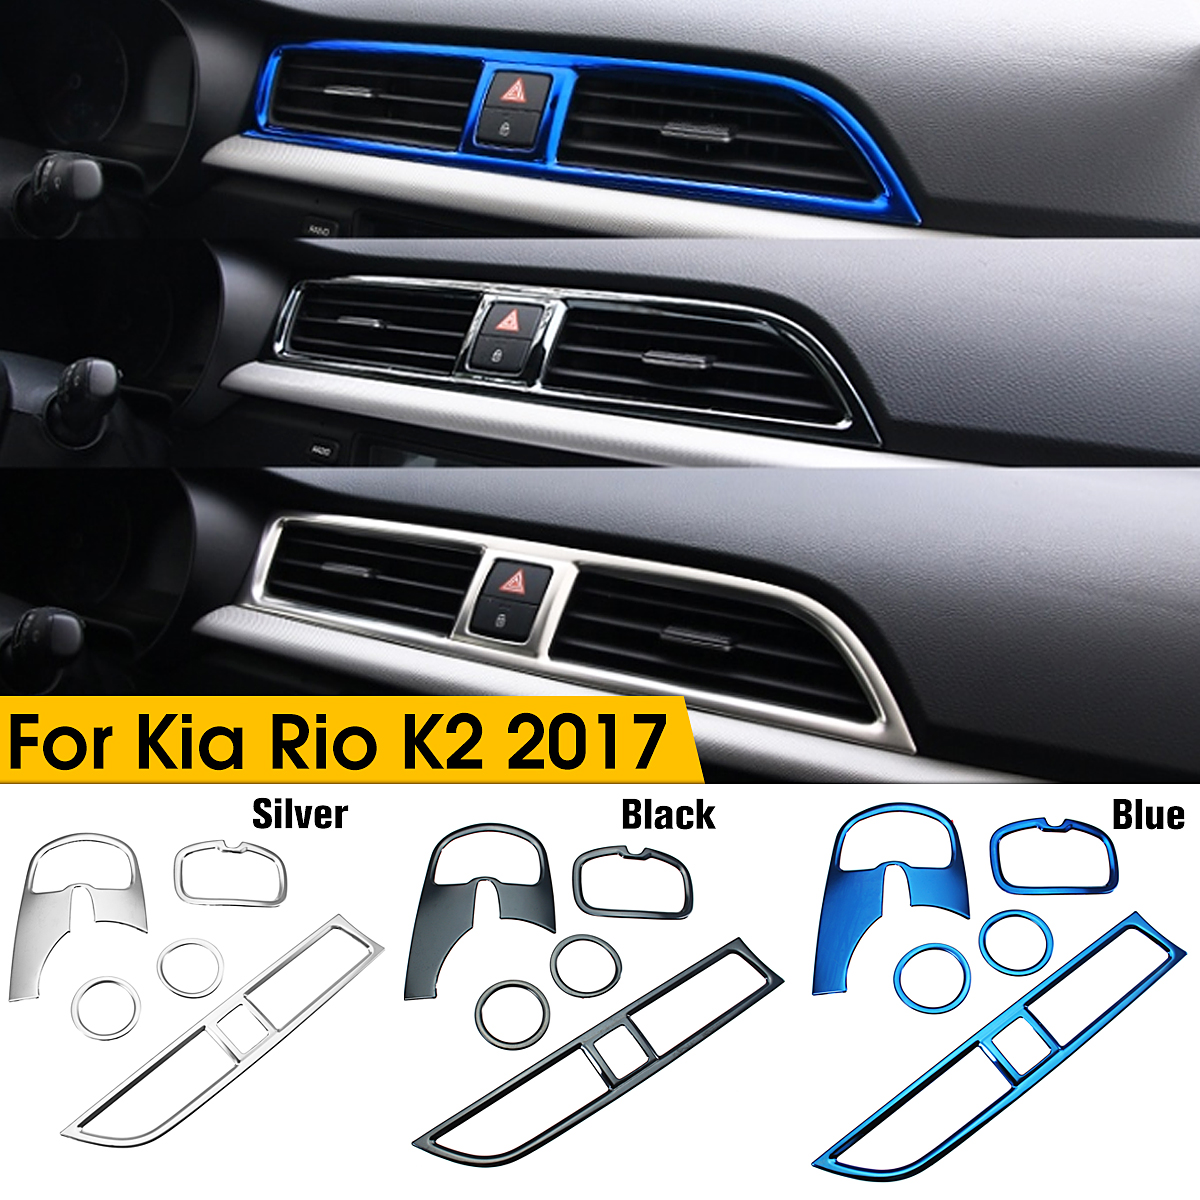 5Pcs/Set Car Stying Chrome Air Outlet Circle Cover Interior Mouldings Decoration Frame For Kia Rio 4 K2 2017 2018